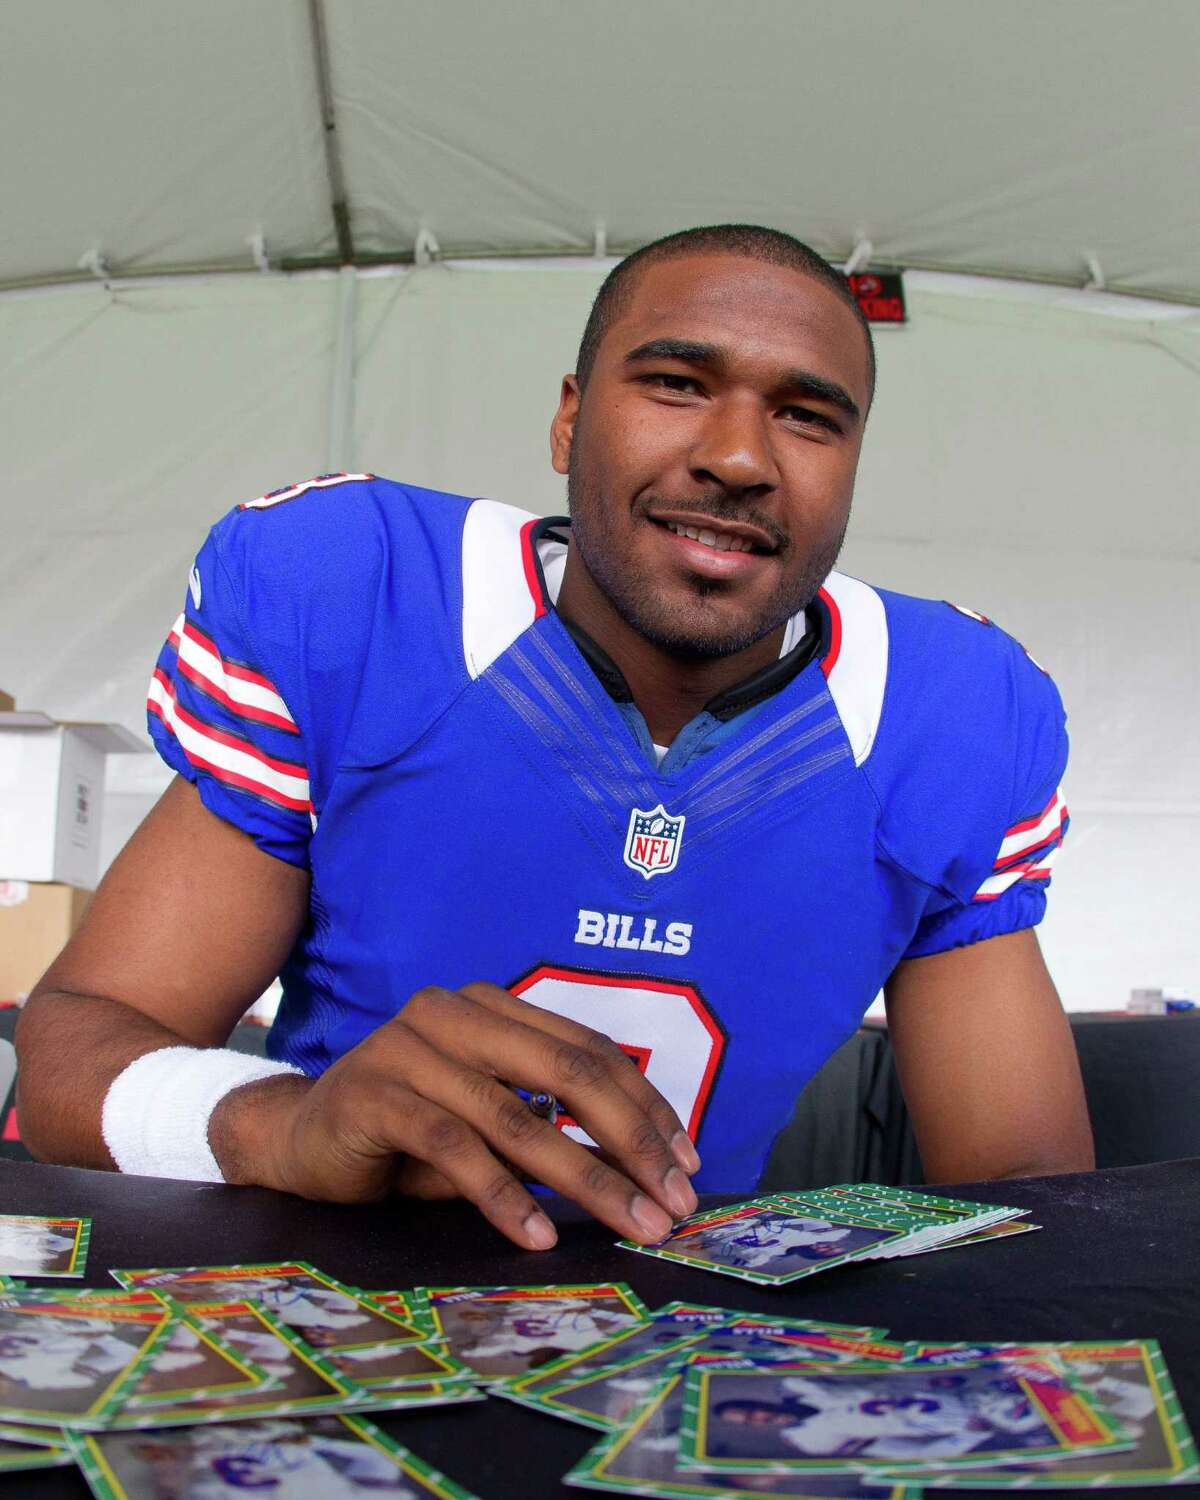 IMAGE DISTRIBUTED FOR NFLPA - Buffalo Bills' E.J. Manuel signs football cards at the NFLPA Rookie Premiere, on Saturday, May 18, 2013 in Pasadena, Calif. (Jeff Lewis / AP Images for NFLPA)